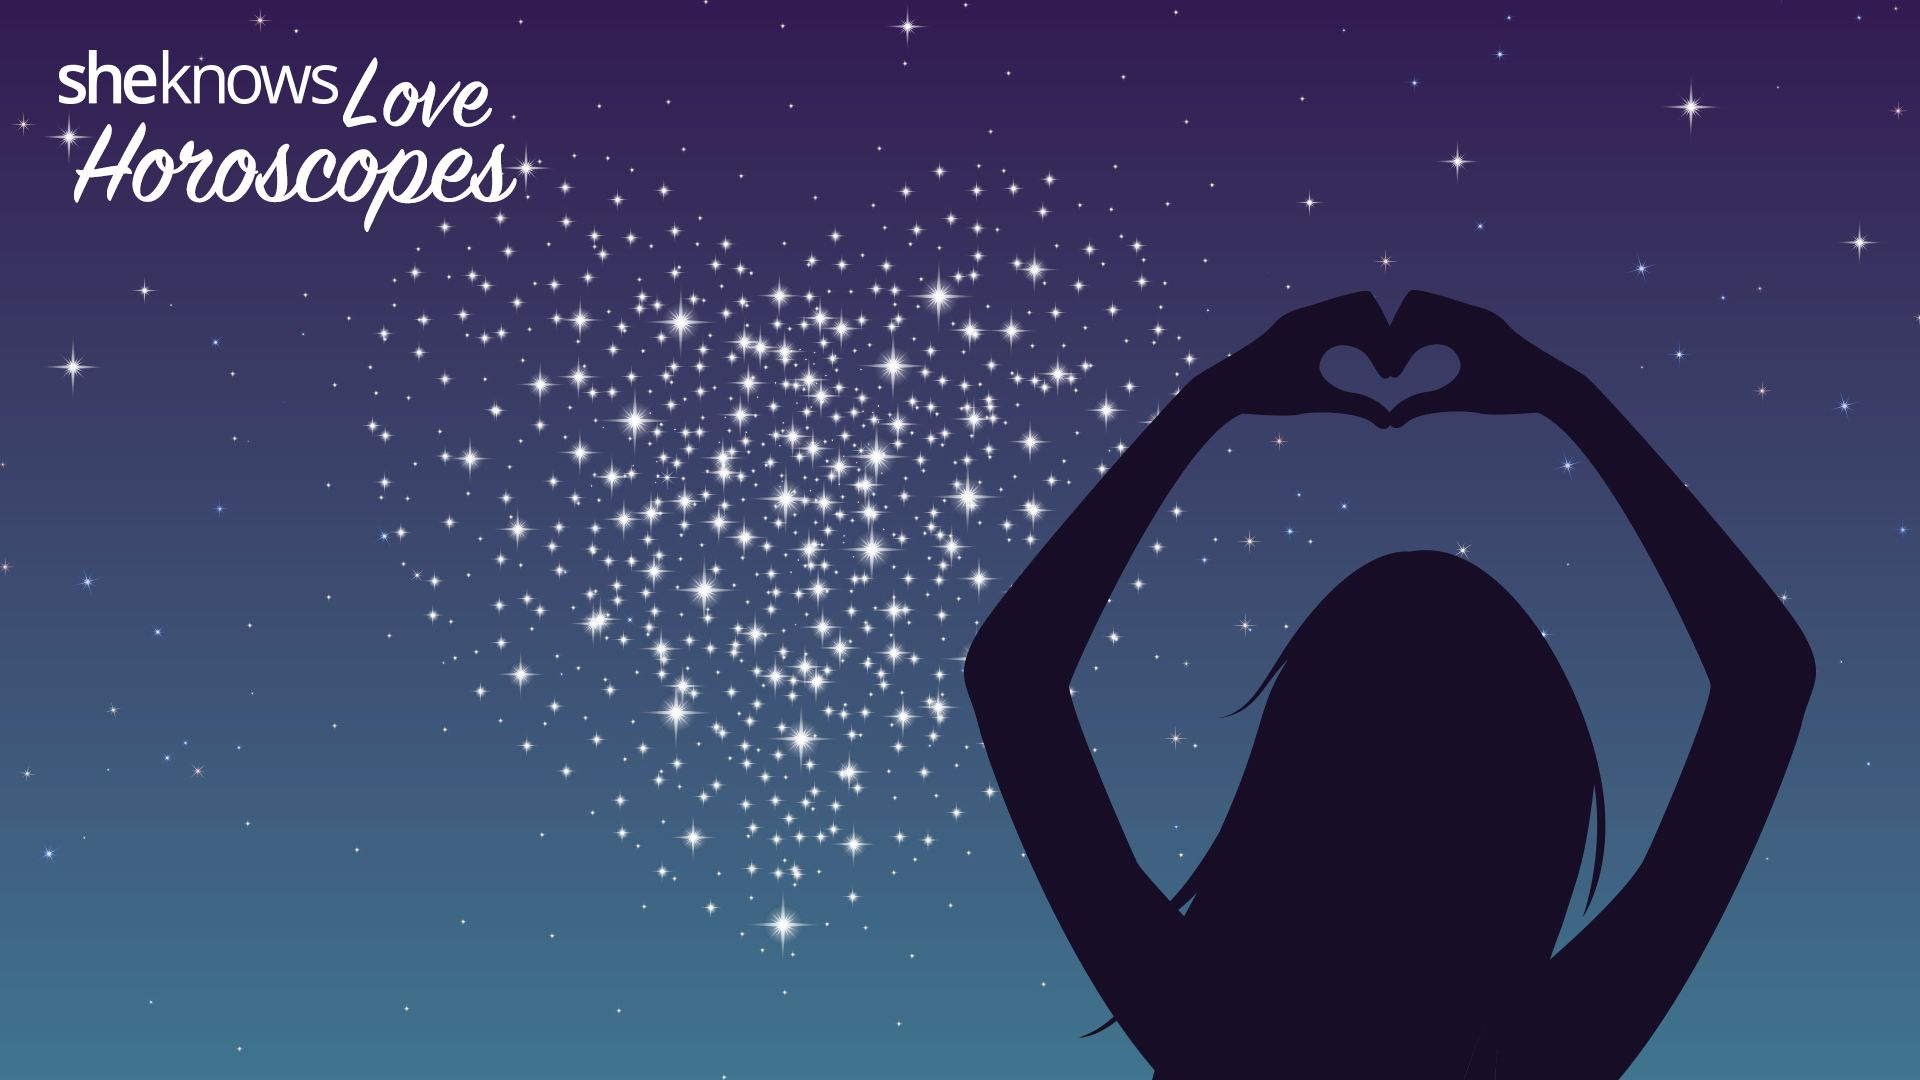 Weekly love horoscopes: Love is what you make of it